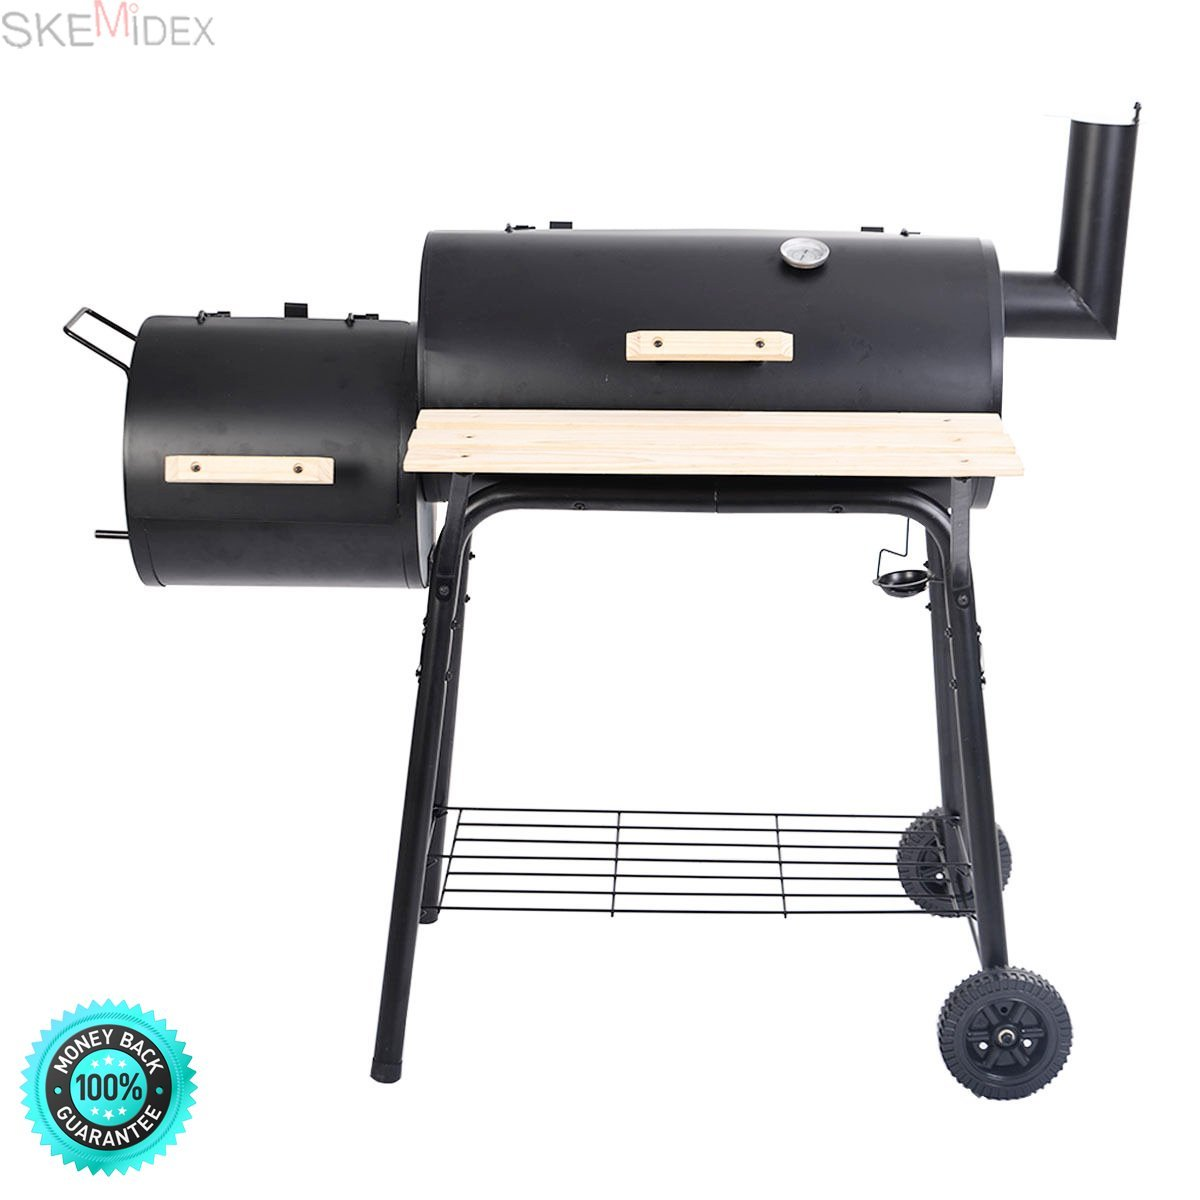 SKEMIDEX--- Outdoor BBQ Grill Charcoal Barbecue Pit Patio Backyard Meat Cooker Smoker And best choice products bbq grill charcoal barbecue patio backyard home meat smoker